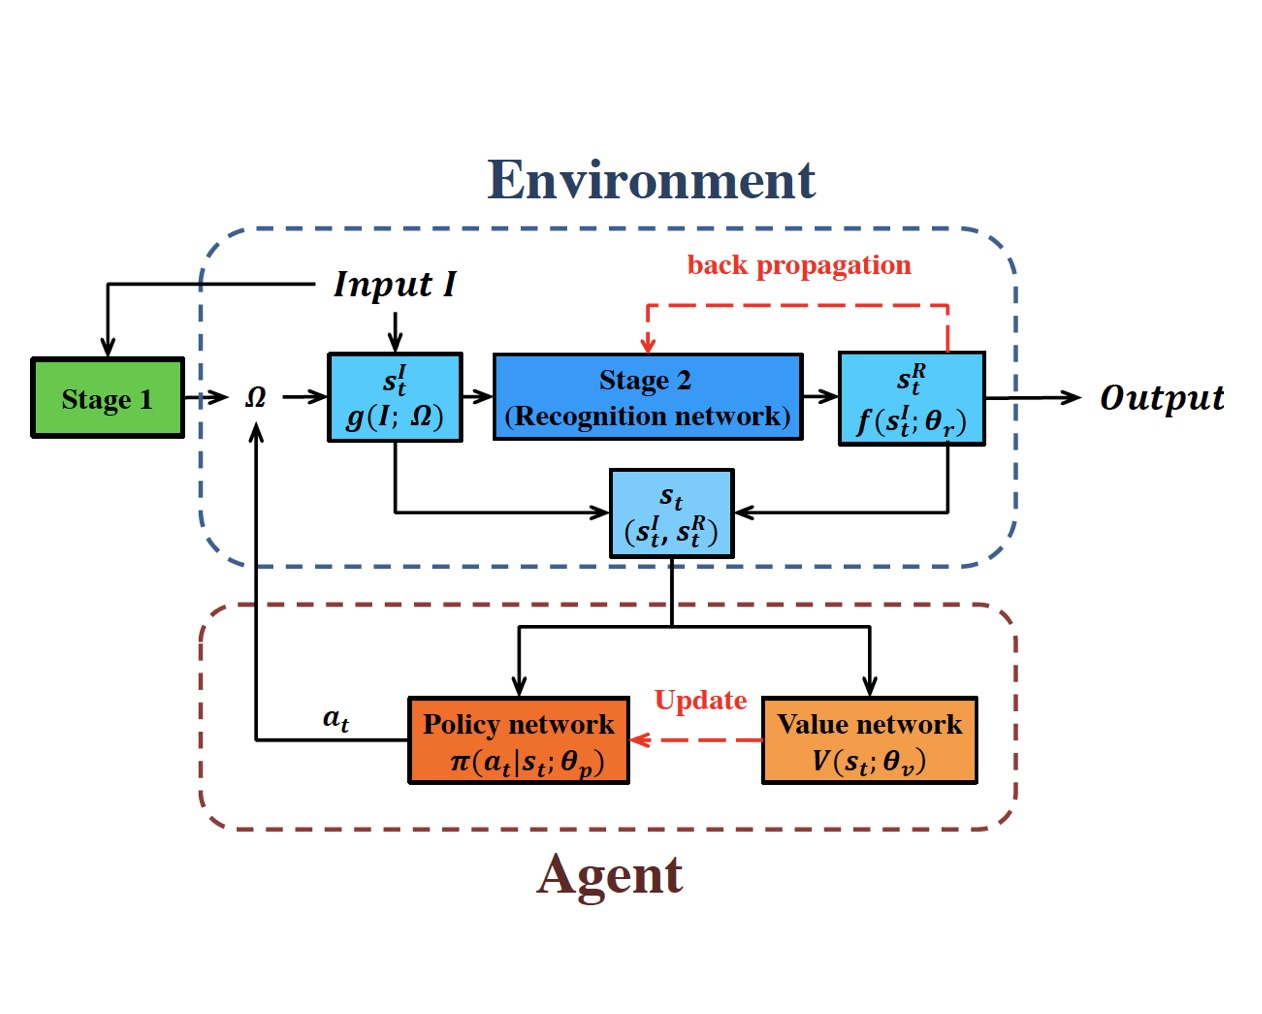 Environment Upgrade Reinforcement Learning for Non-differentiable Multi-stage Pipelines